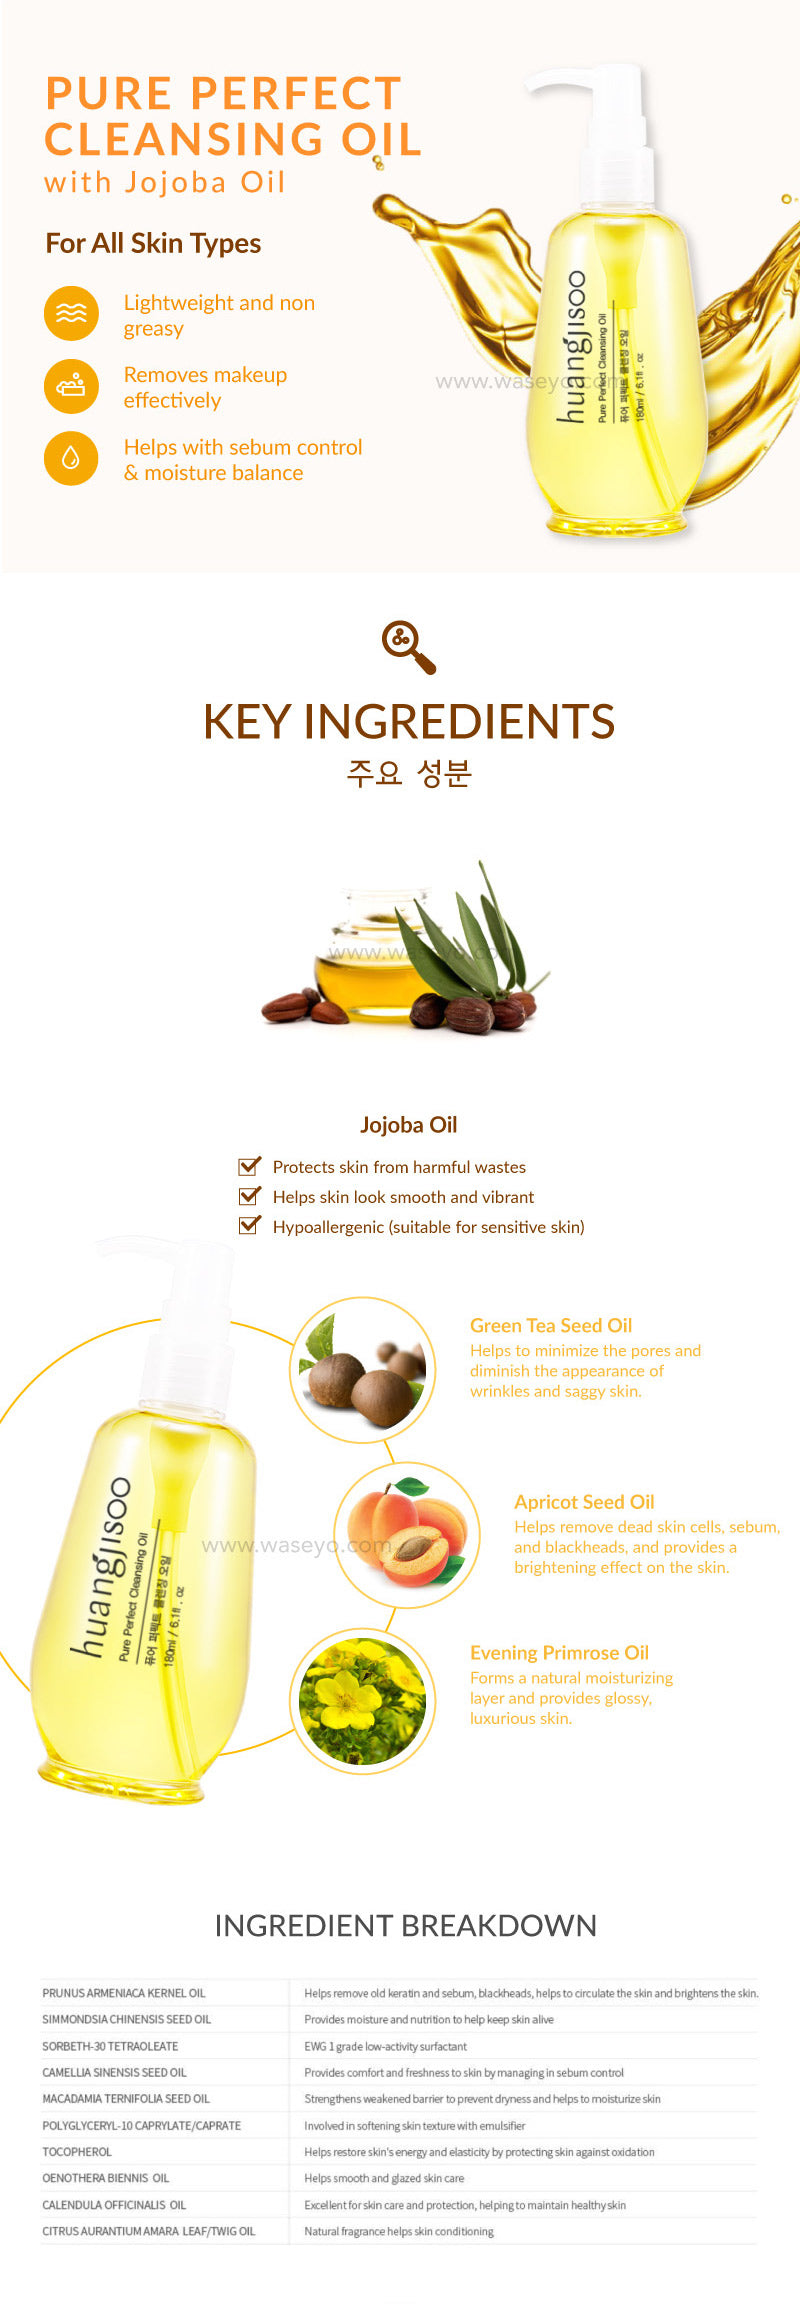 The Huangjisoo Pure Perfect Cleansing Oil is lightweight and non greasy, removes makeup very effectively and even helps with sebum control and moisture balance! The main oils used are Jojoba Oil, Green Tea Seed Oil, Apricot Seed Oil and evening primrose oils. This helps to protect your skin and keep in looking healthy. The premium oils also helps to provide moisture balance, minimise your pores and remove dead skin cells, blackheads, sebum and also provide a brightening effect too! Do take a look at the ingredients below!